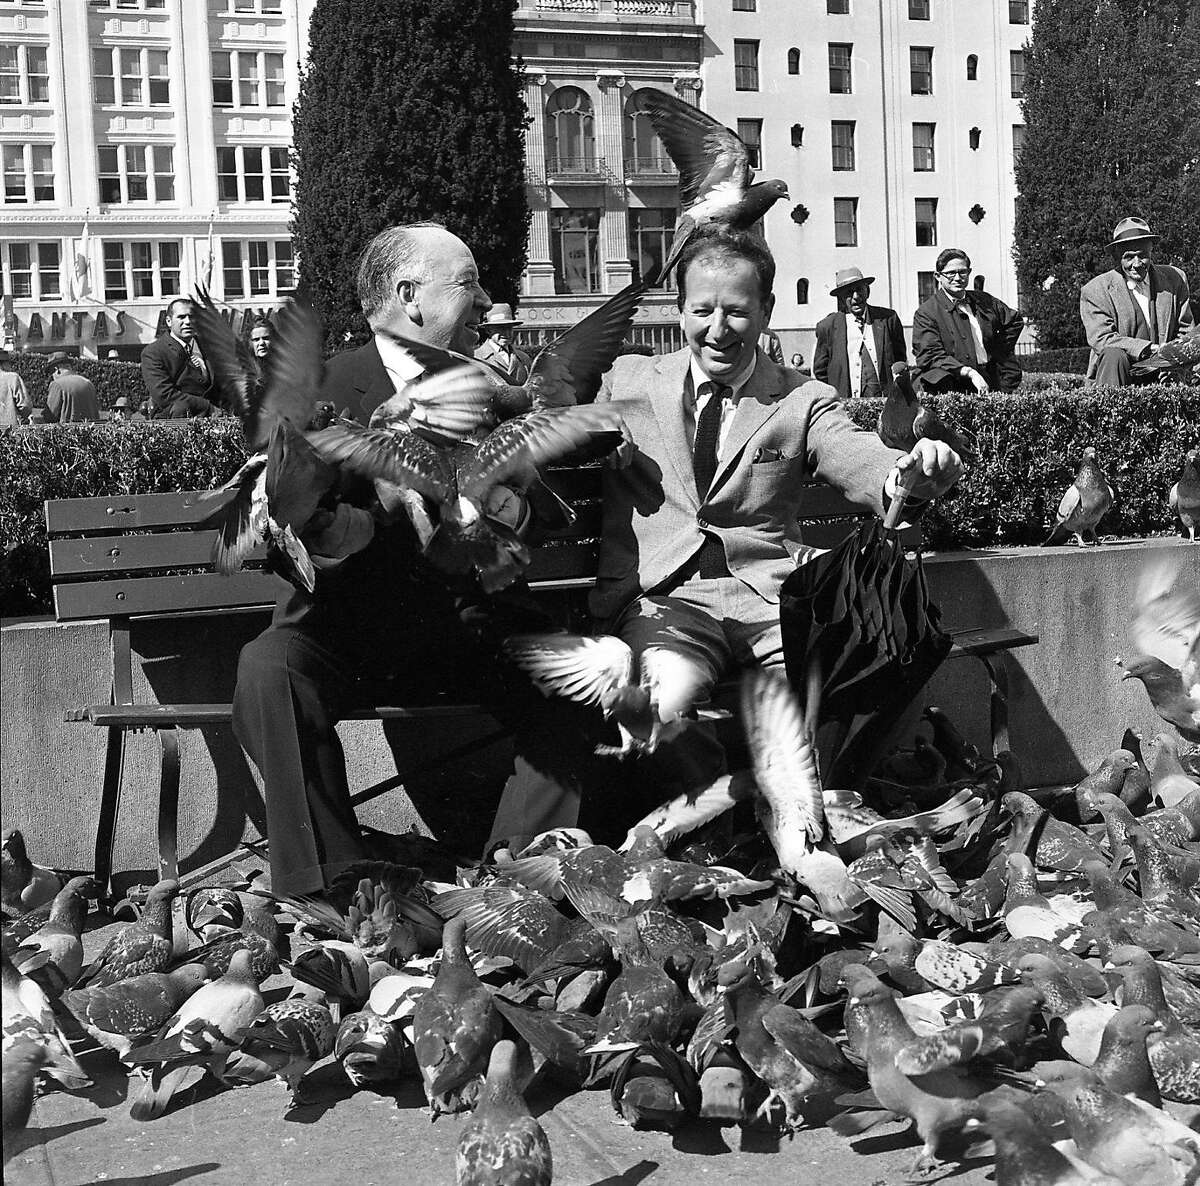 April 1, 1963: Herb Caen and Alfred Hitchcock have fun in Union Square talking about Hitchcock's new movie